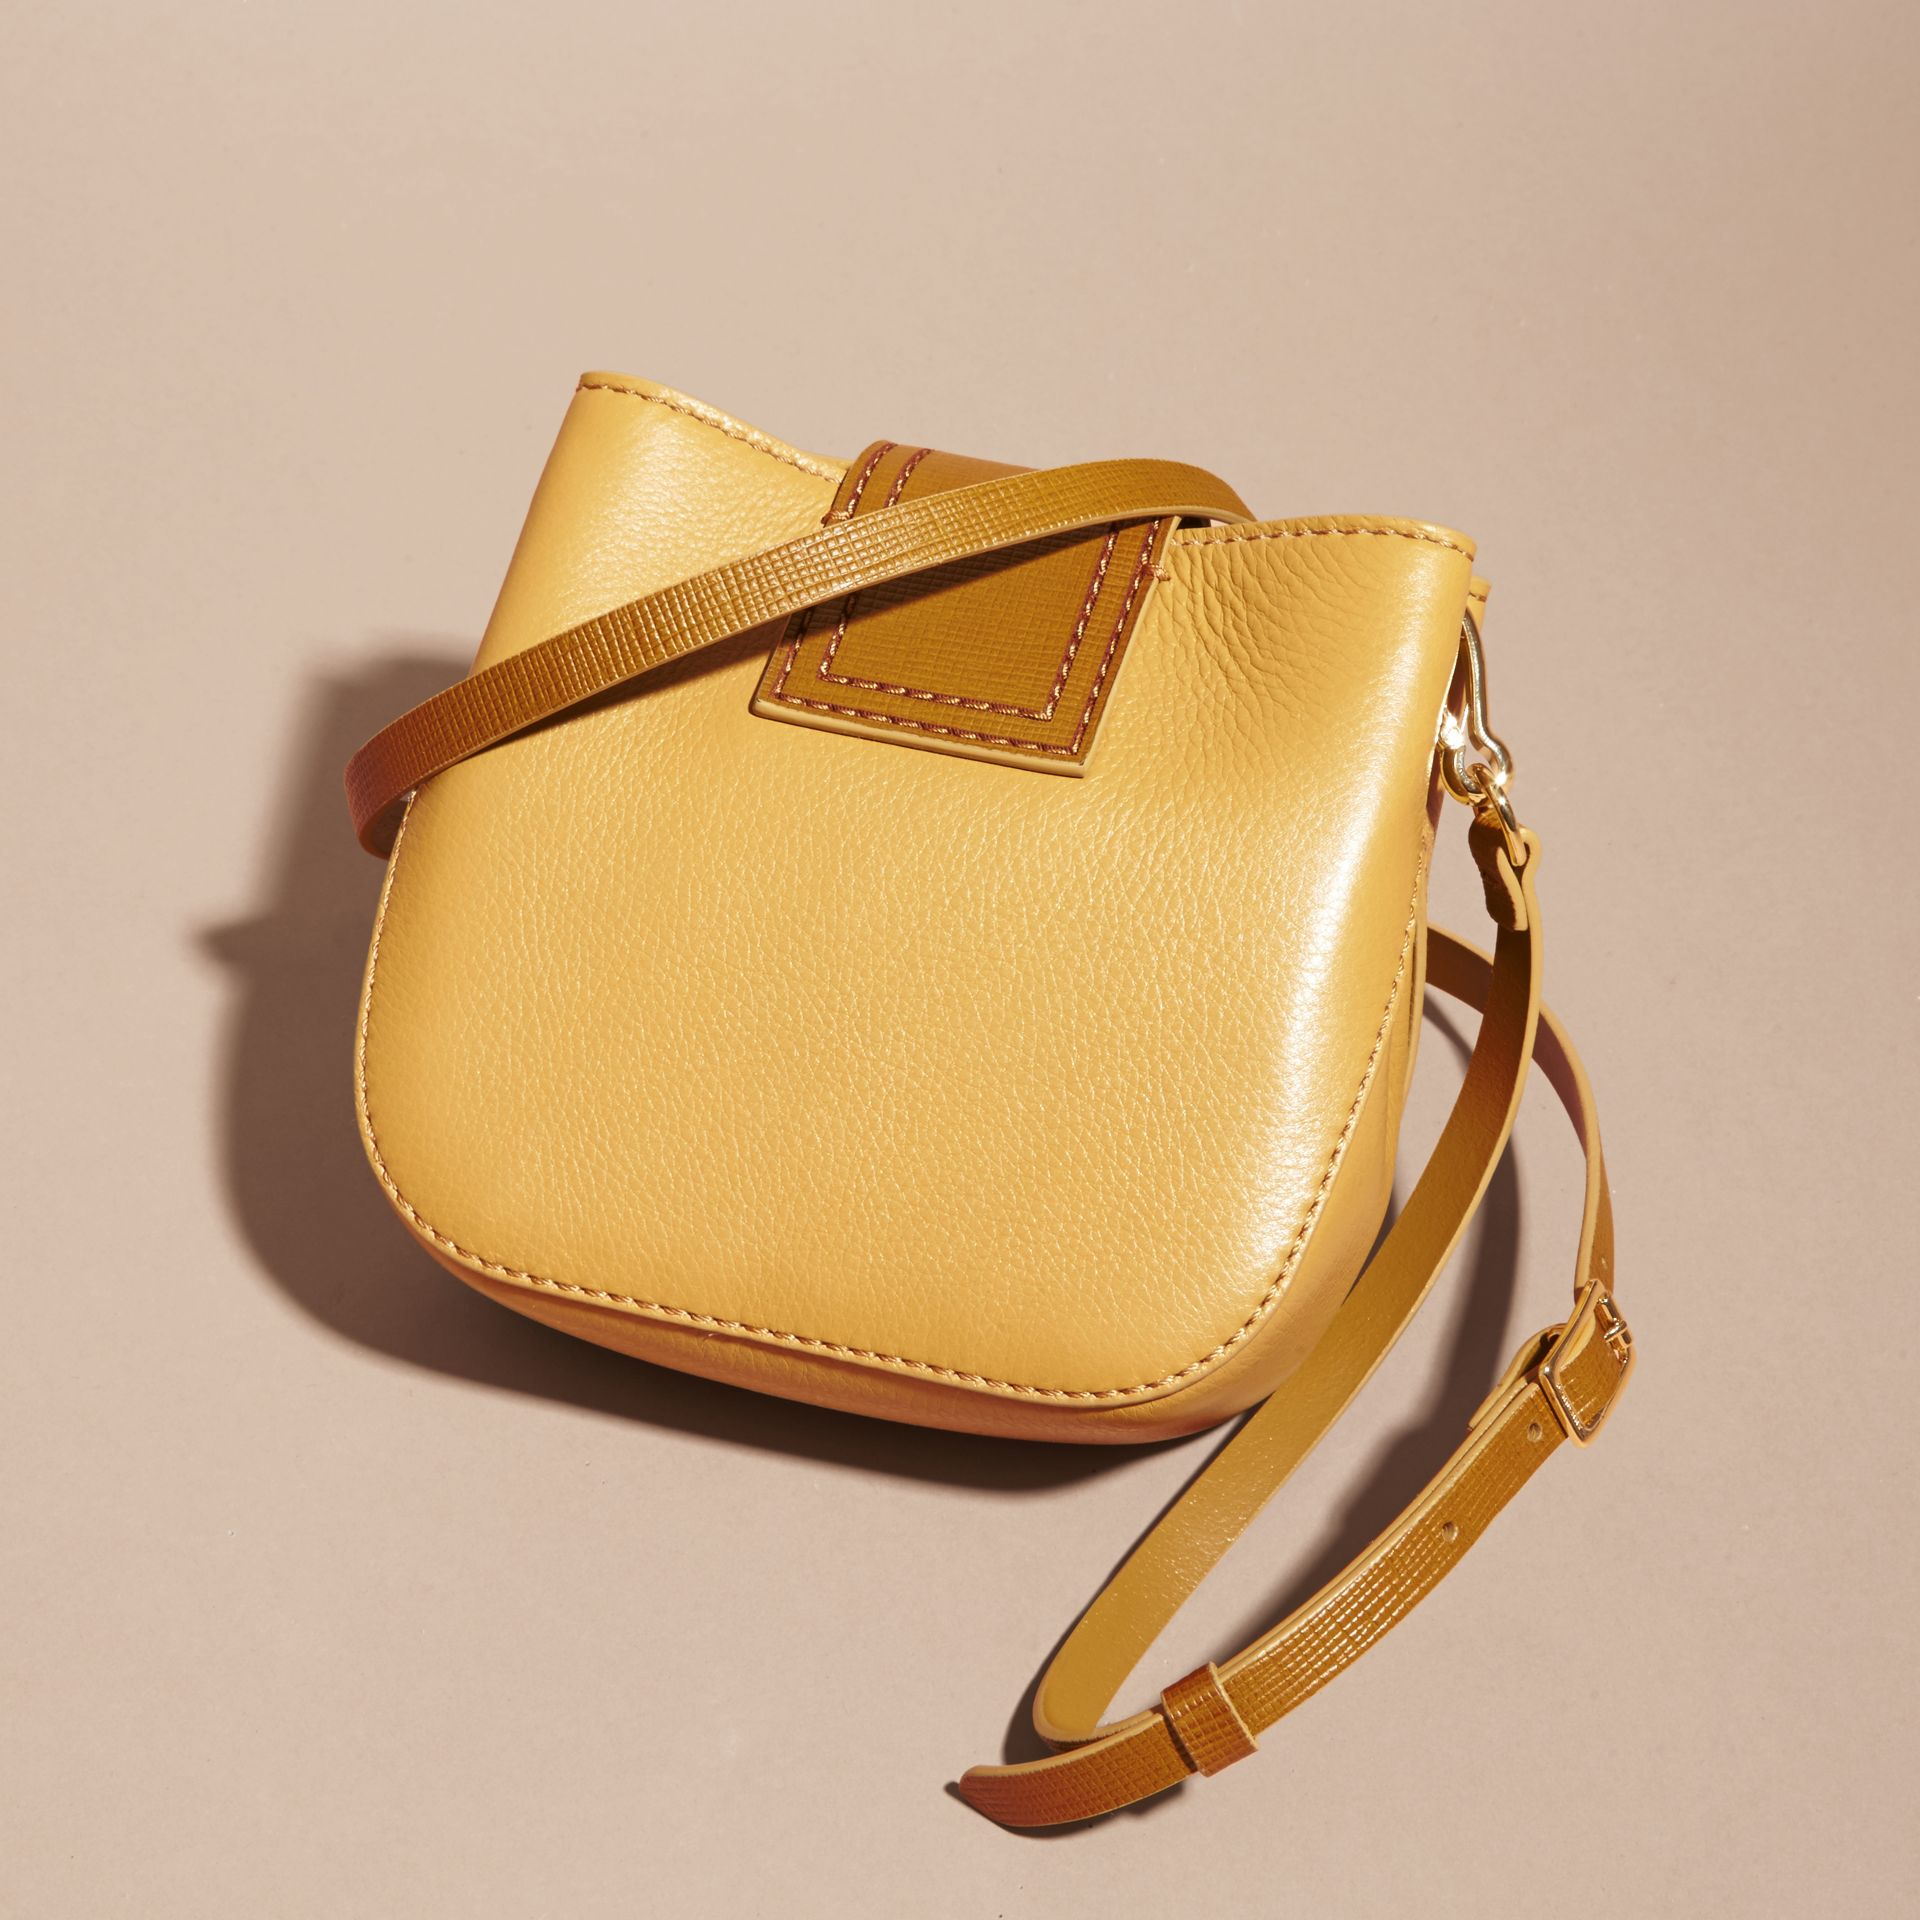 Ochre yellow The Small Square Buckle Bag in Leather - gallery image 5